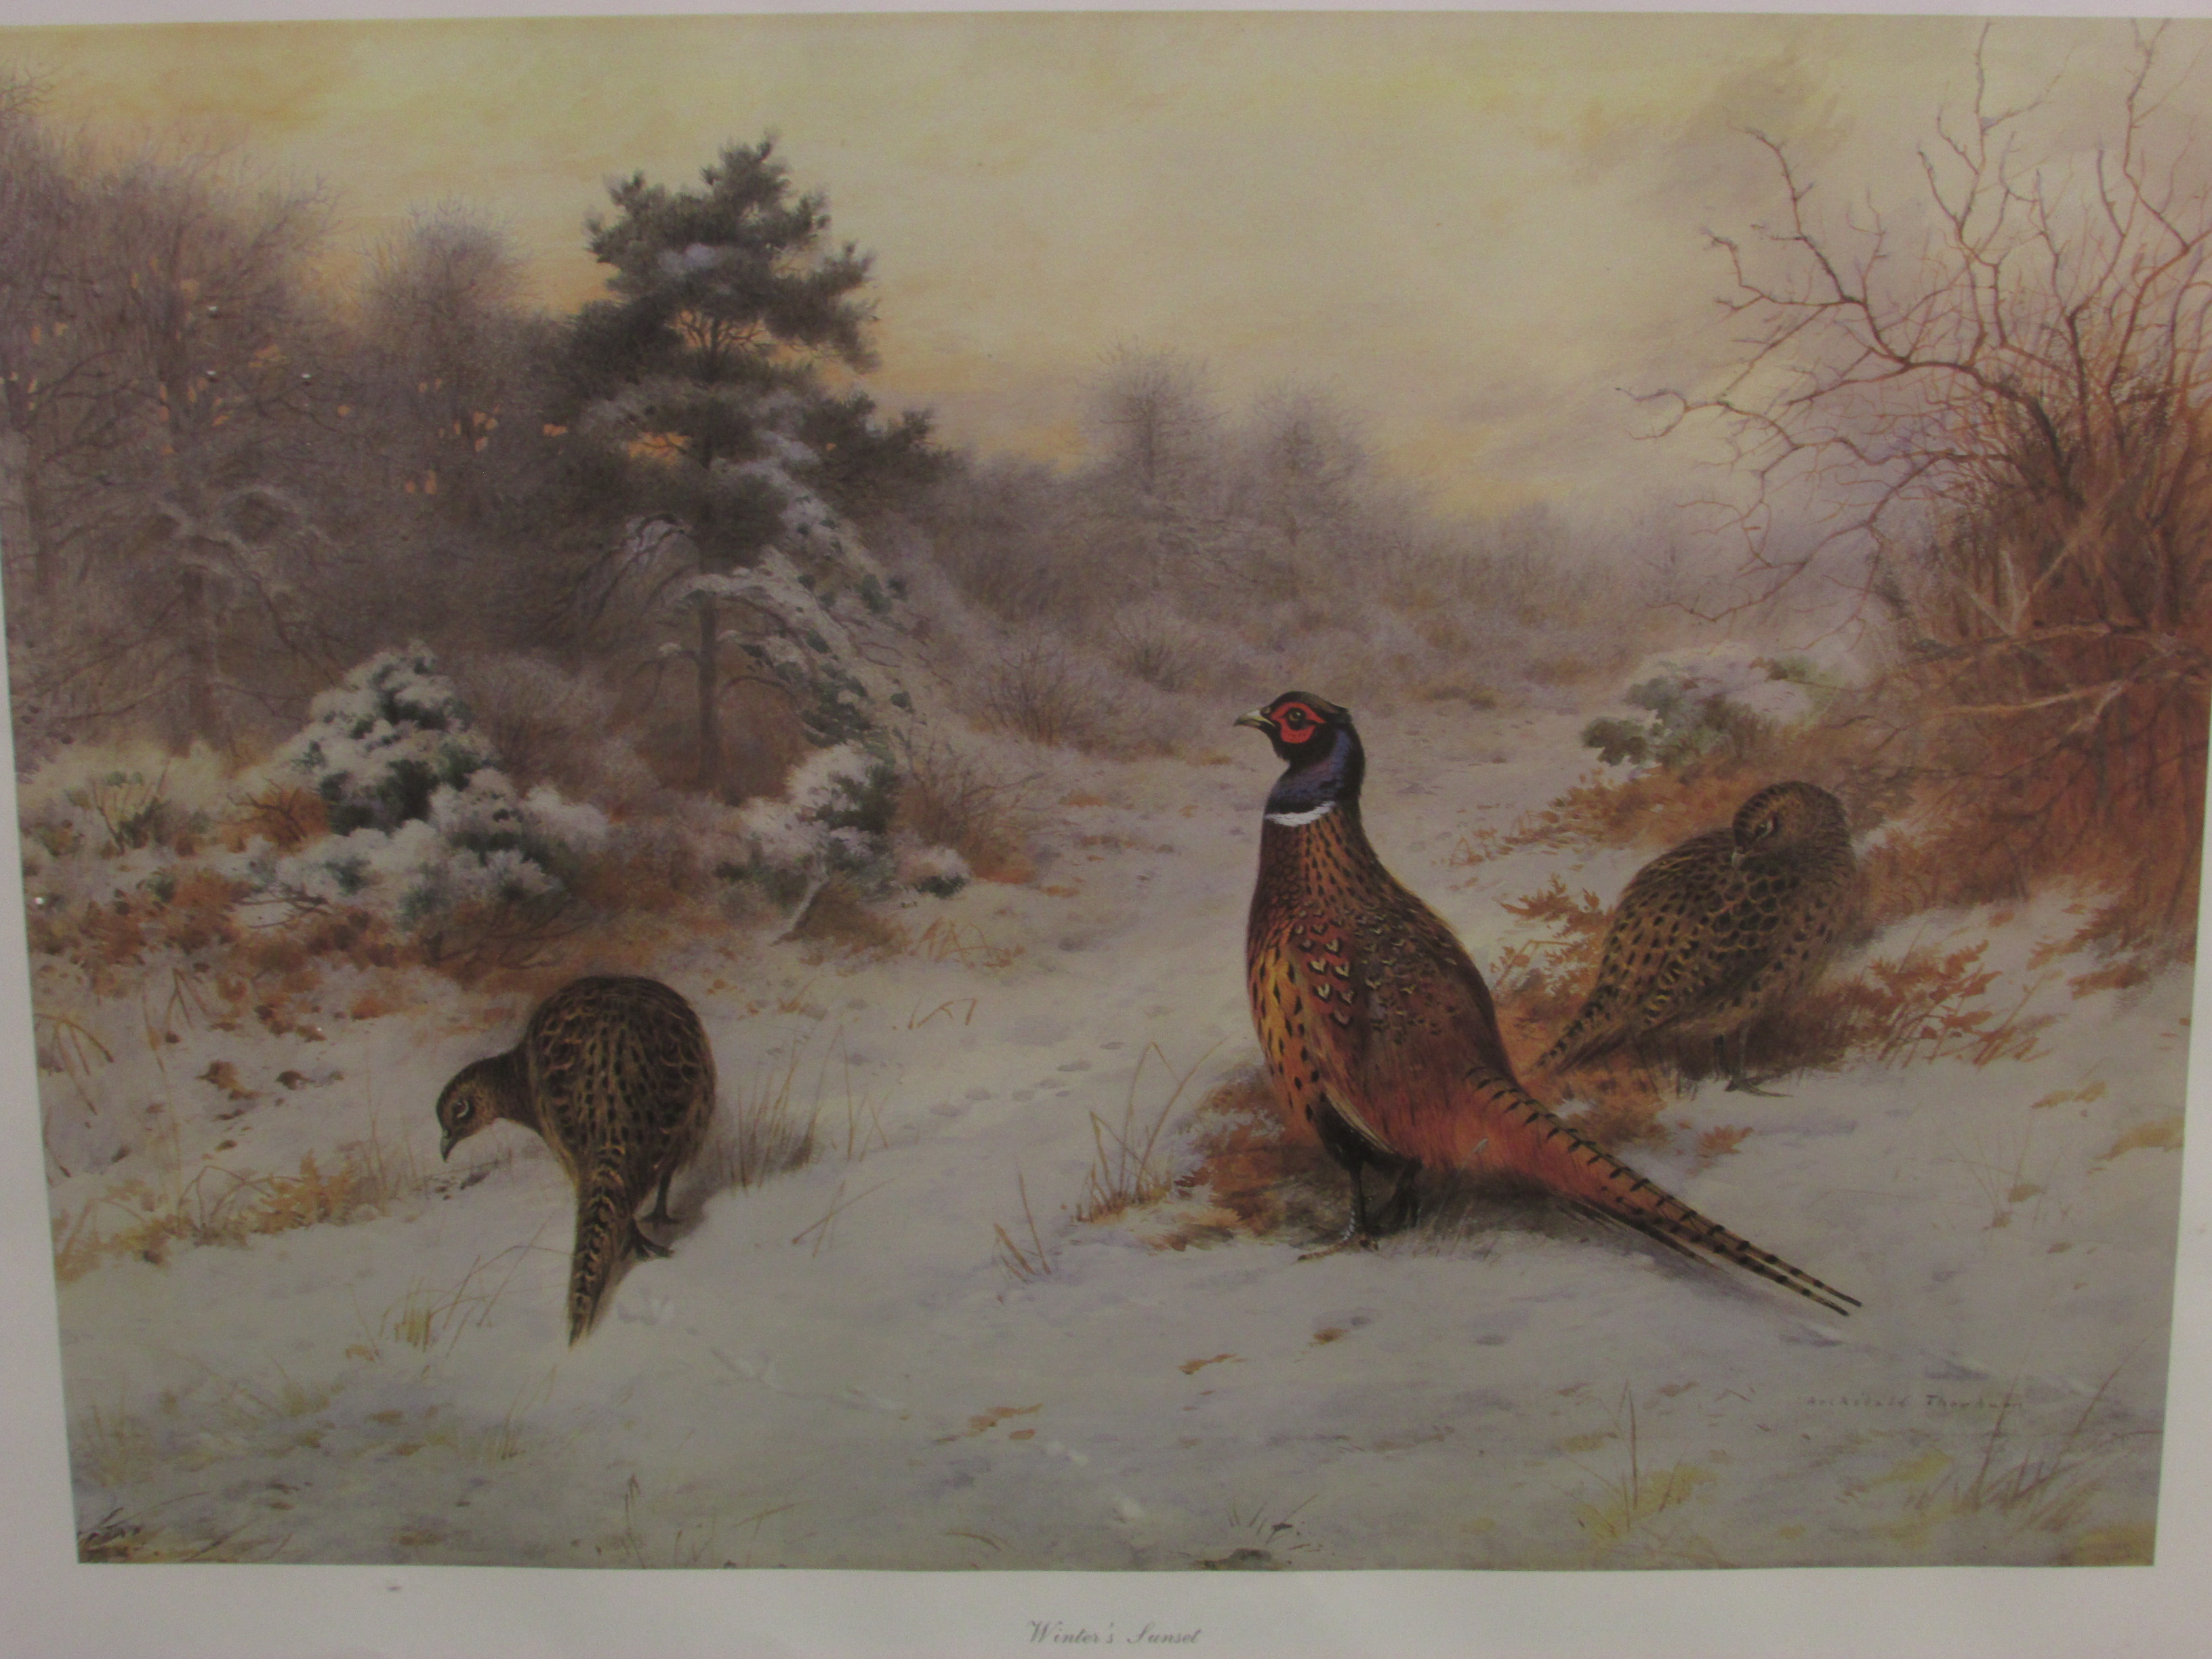 Lot 224 - After Archibald Thorburn (1860-1935) - 'Winter's Sunset', limited edition colour print 267 / 850,